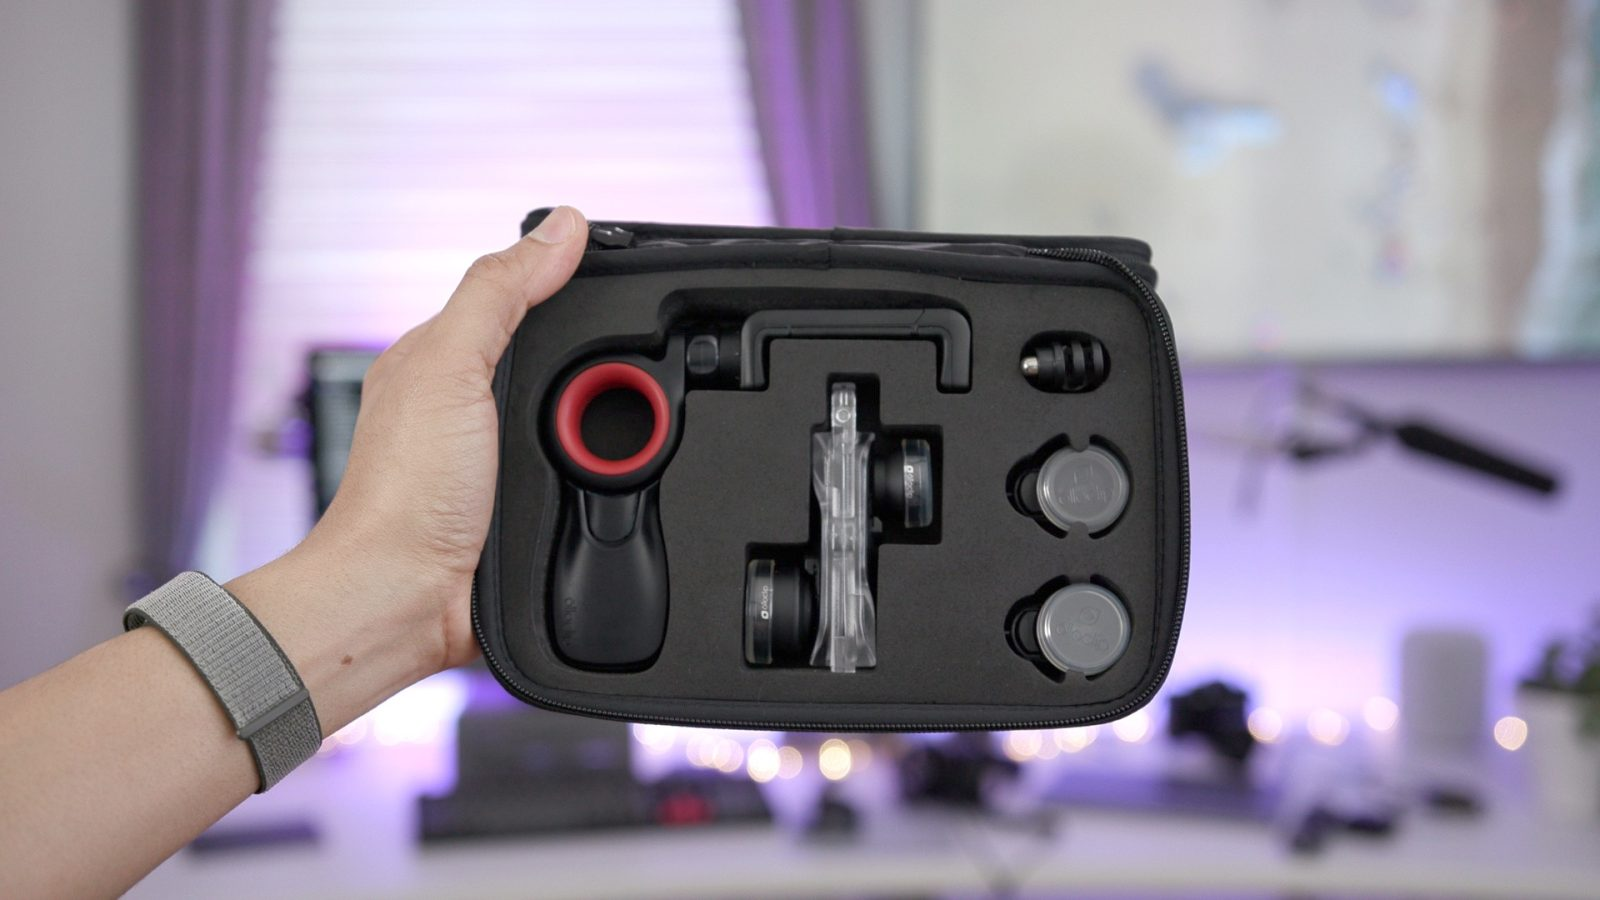 Hands-on: Olloclip Filmer's Kit provides valuable tools for iPhone